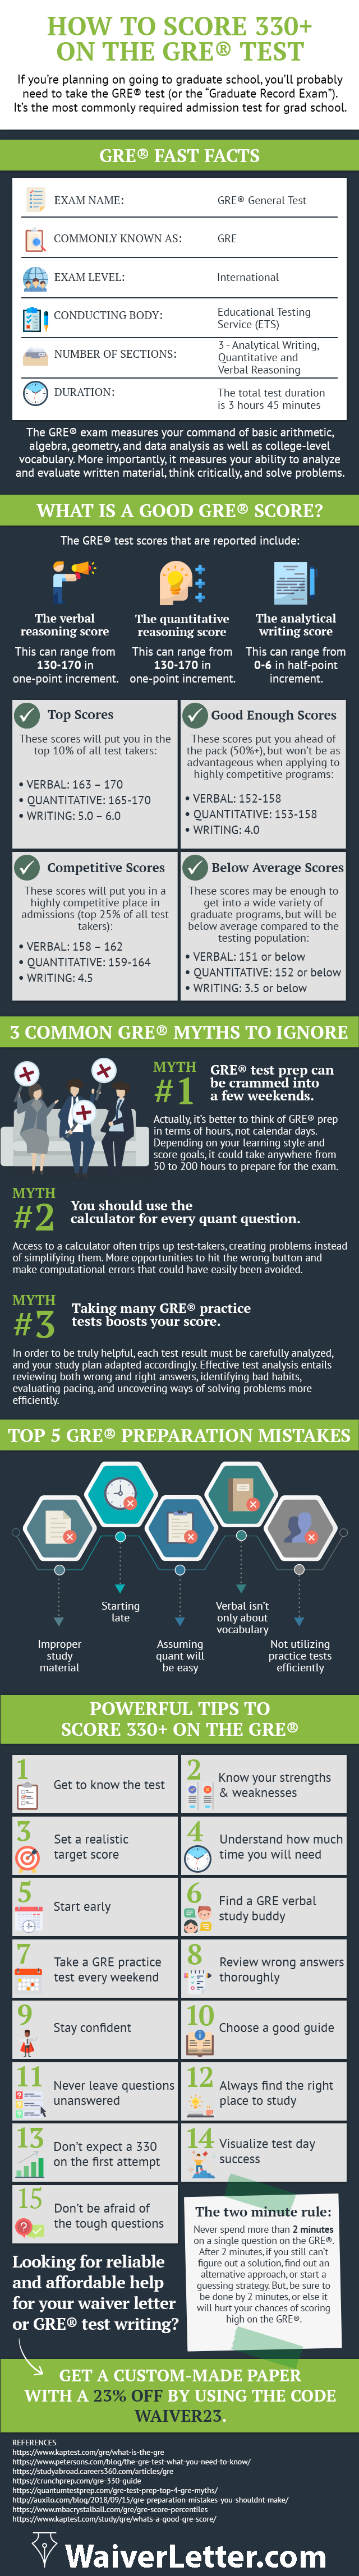 What to write in a Waiver Letter to GRE Public Health #infographic